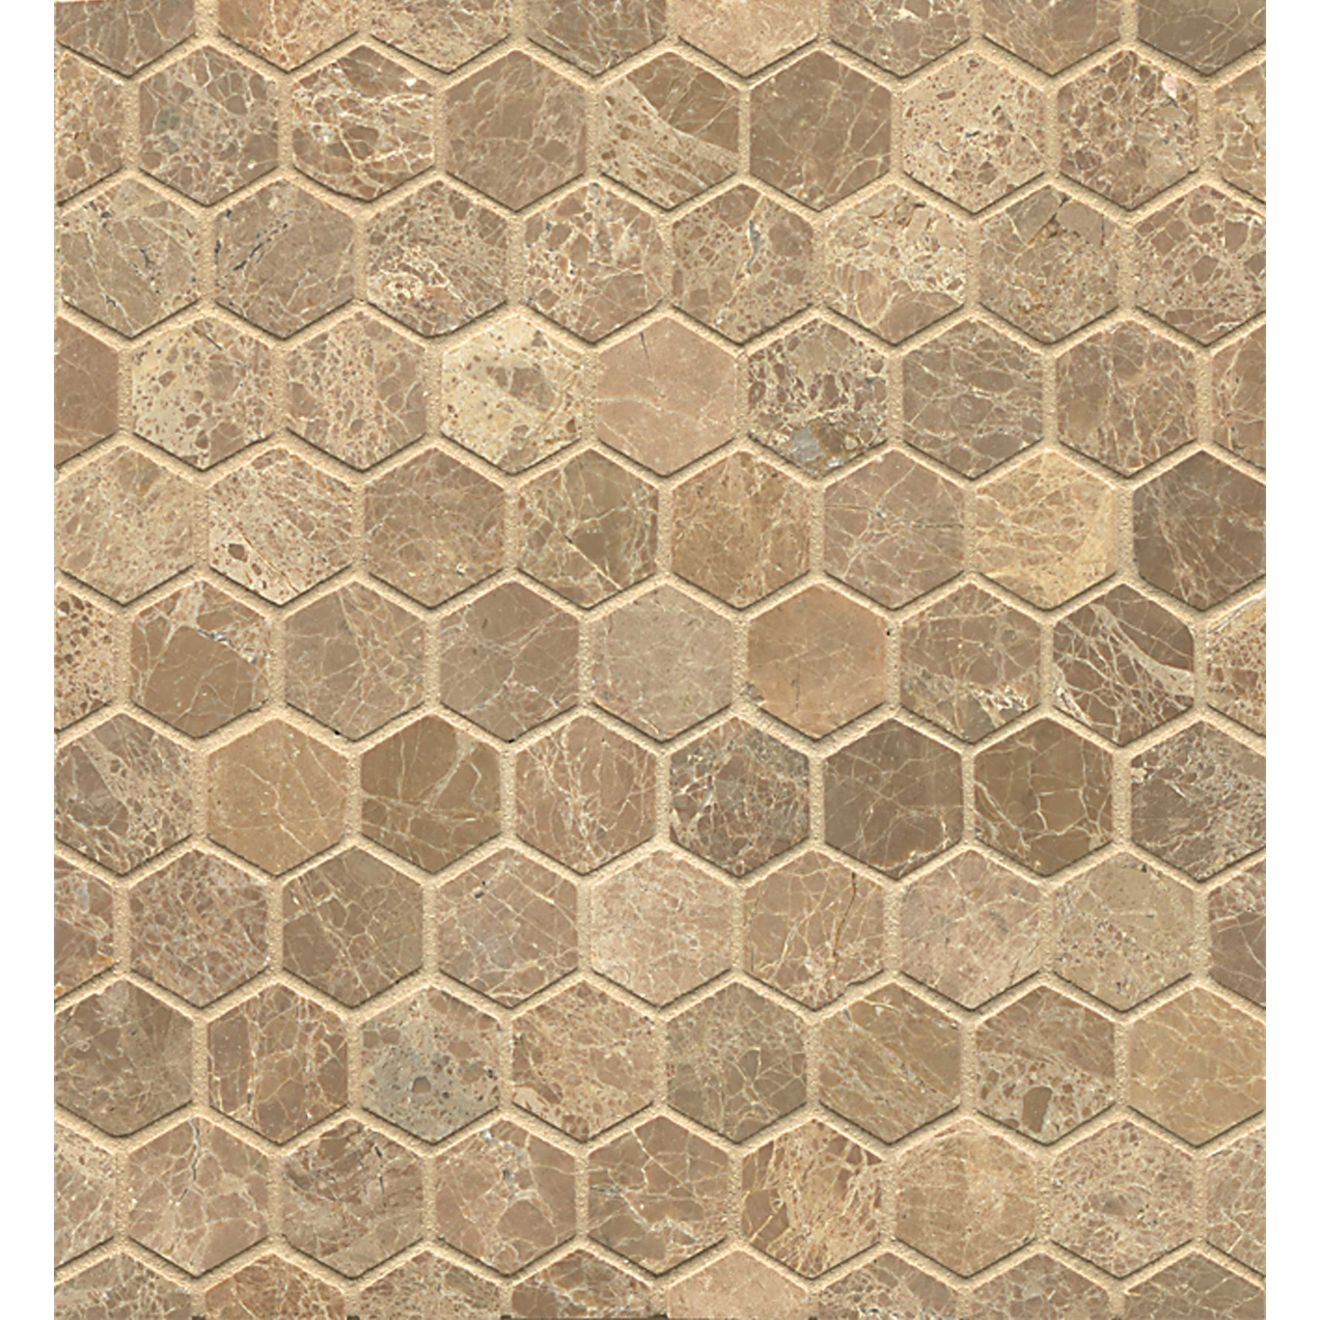 Mod Rocks Limestone Hexagon Mosaic in Viburnum